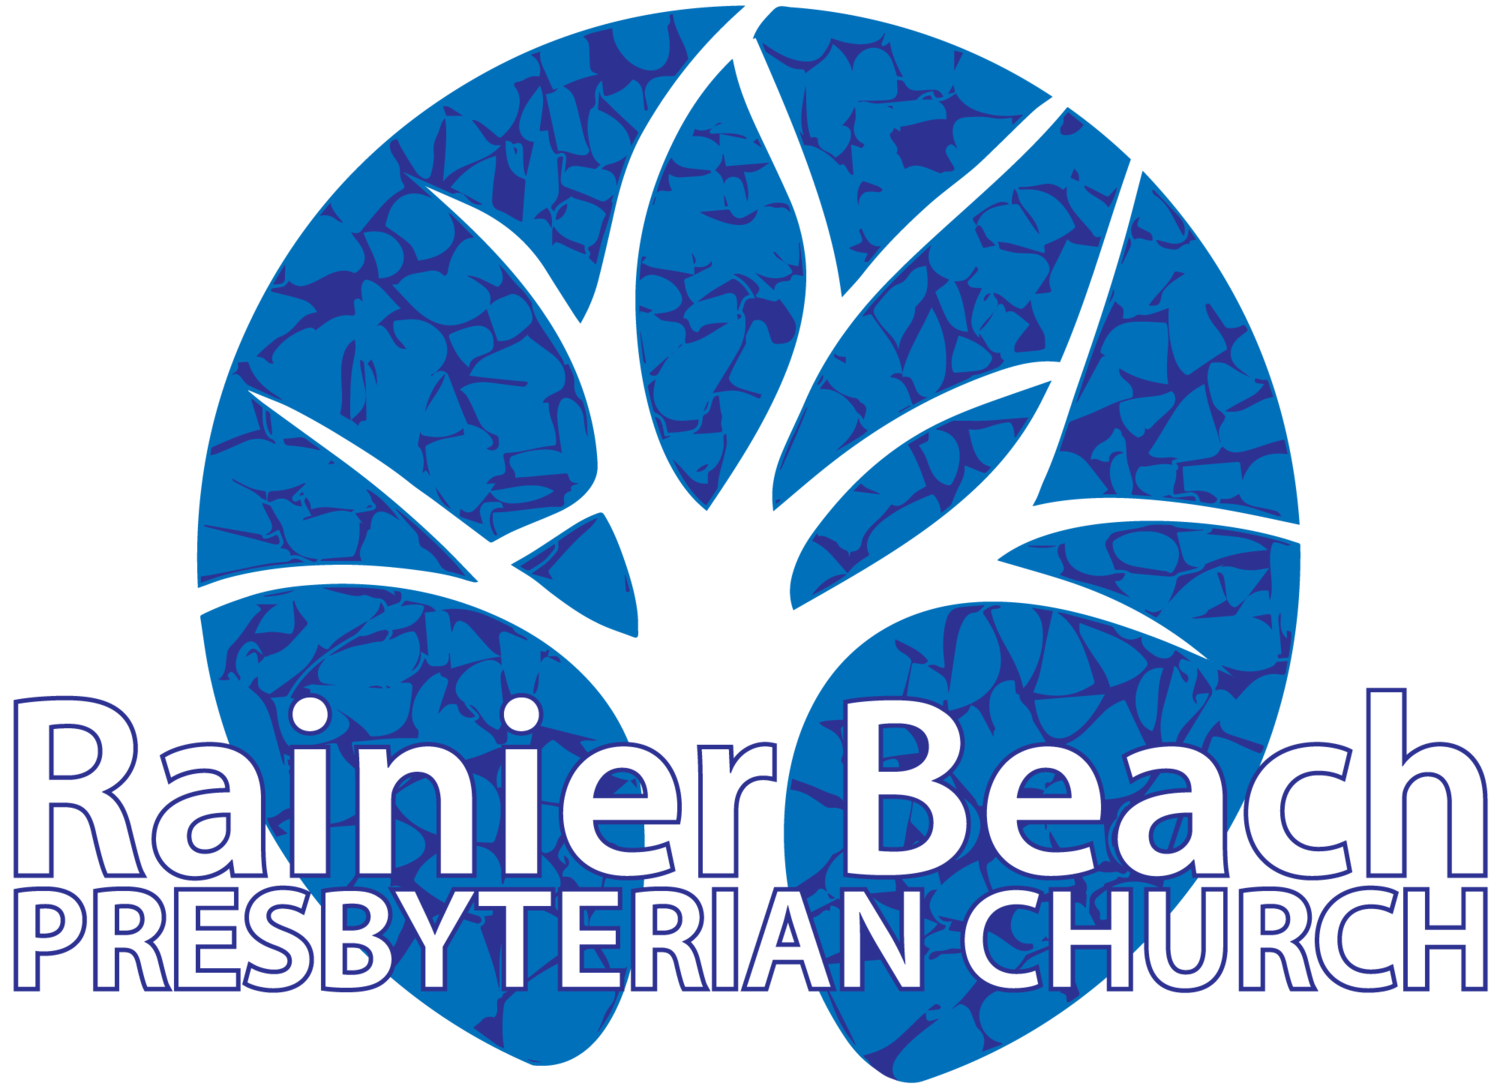 Rainier Beach Presbyterian Church